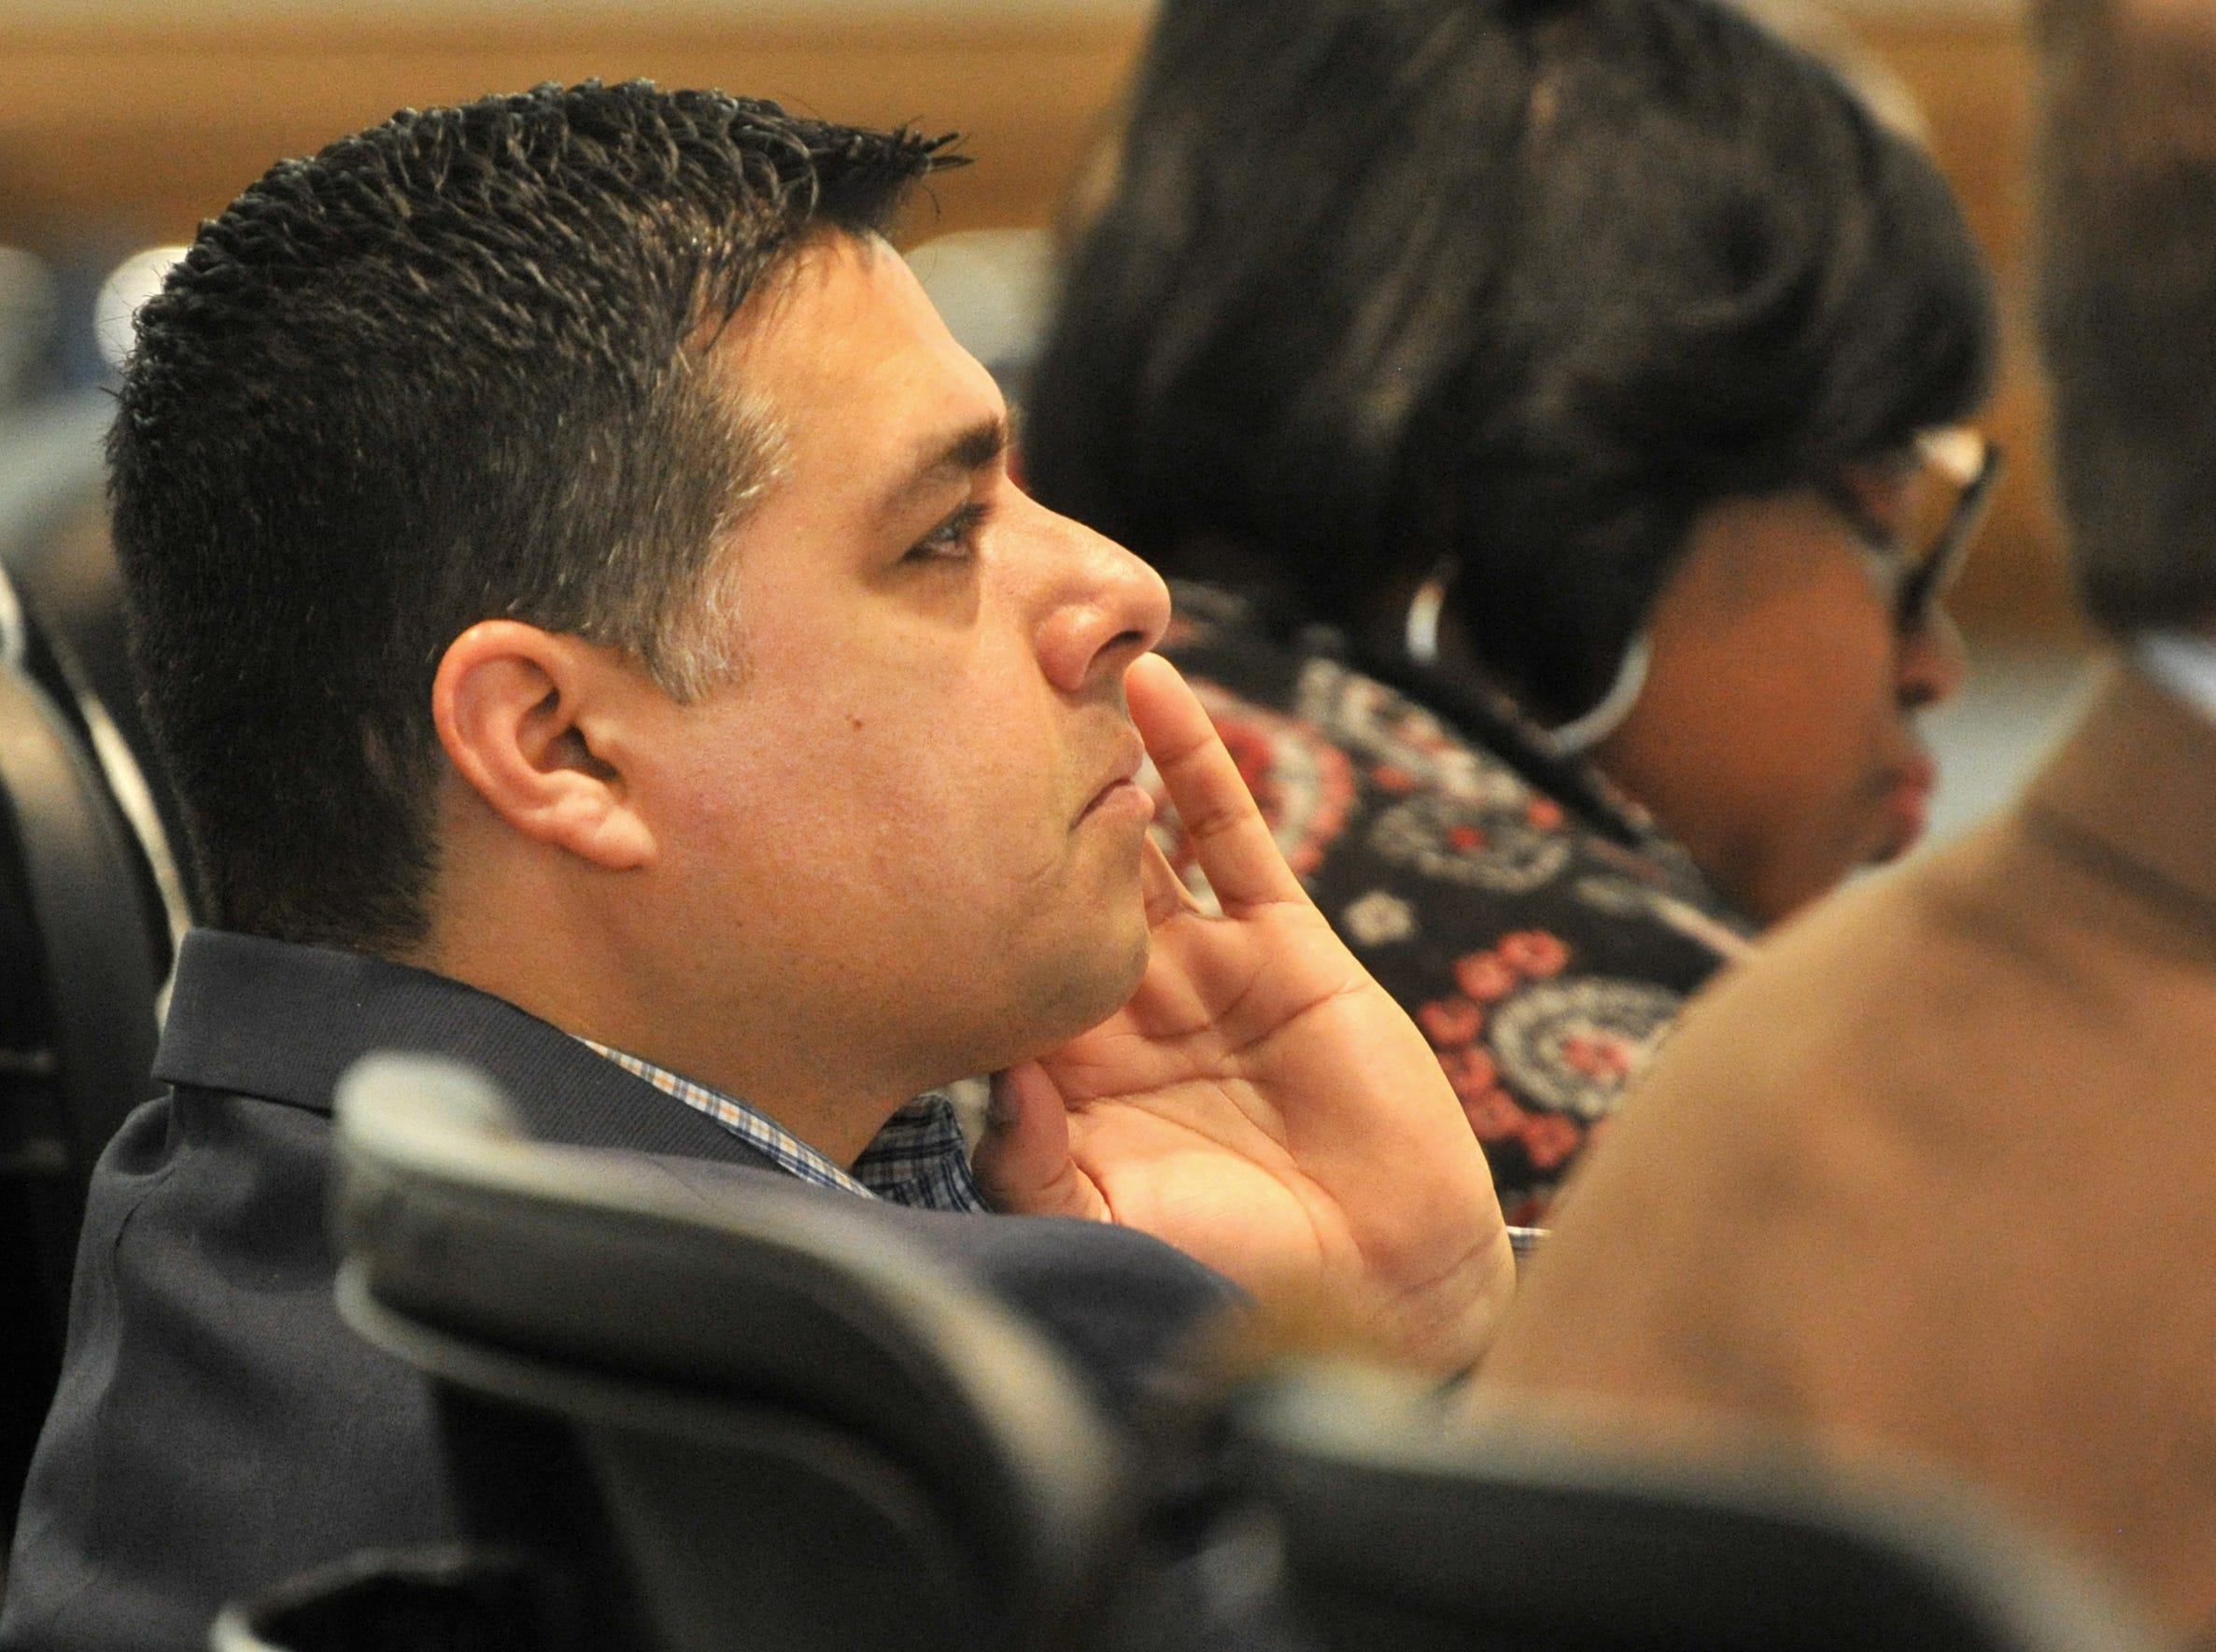 Wichita Falls Mayor, Stephen Santellana listened during a city planning meeting held at the MPEC, Tuesday morning.